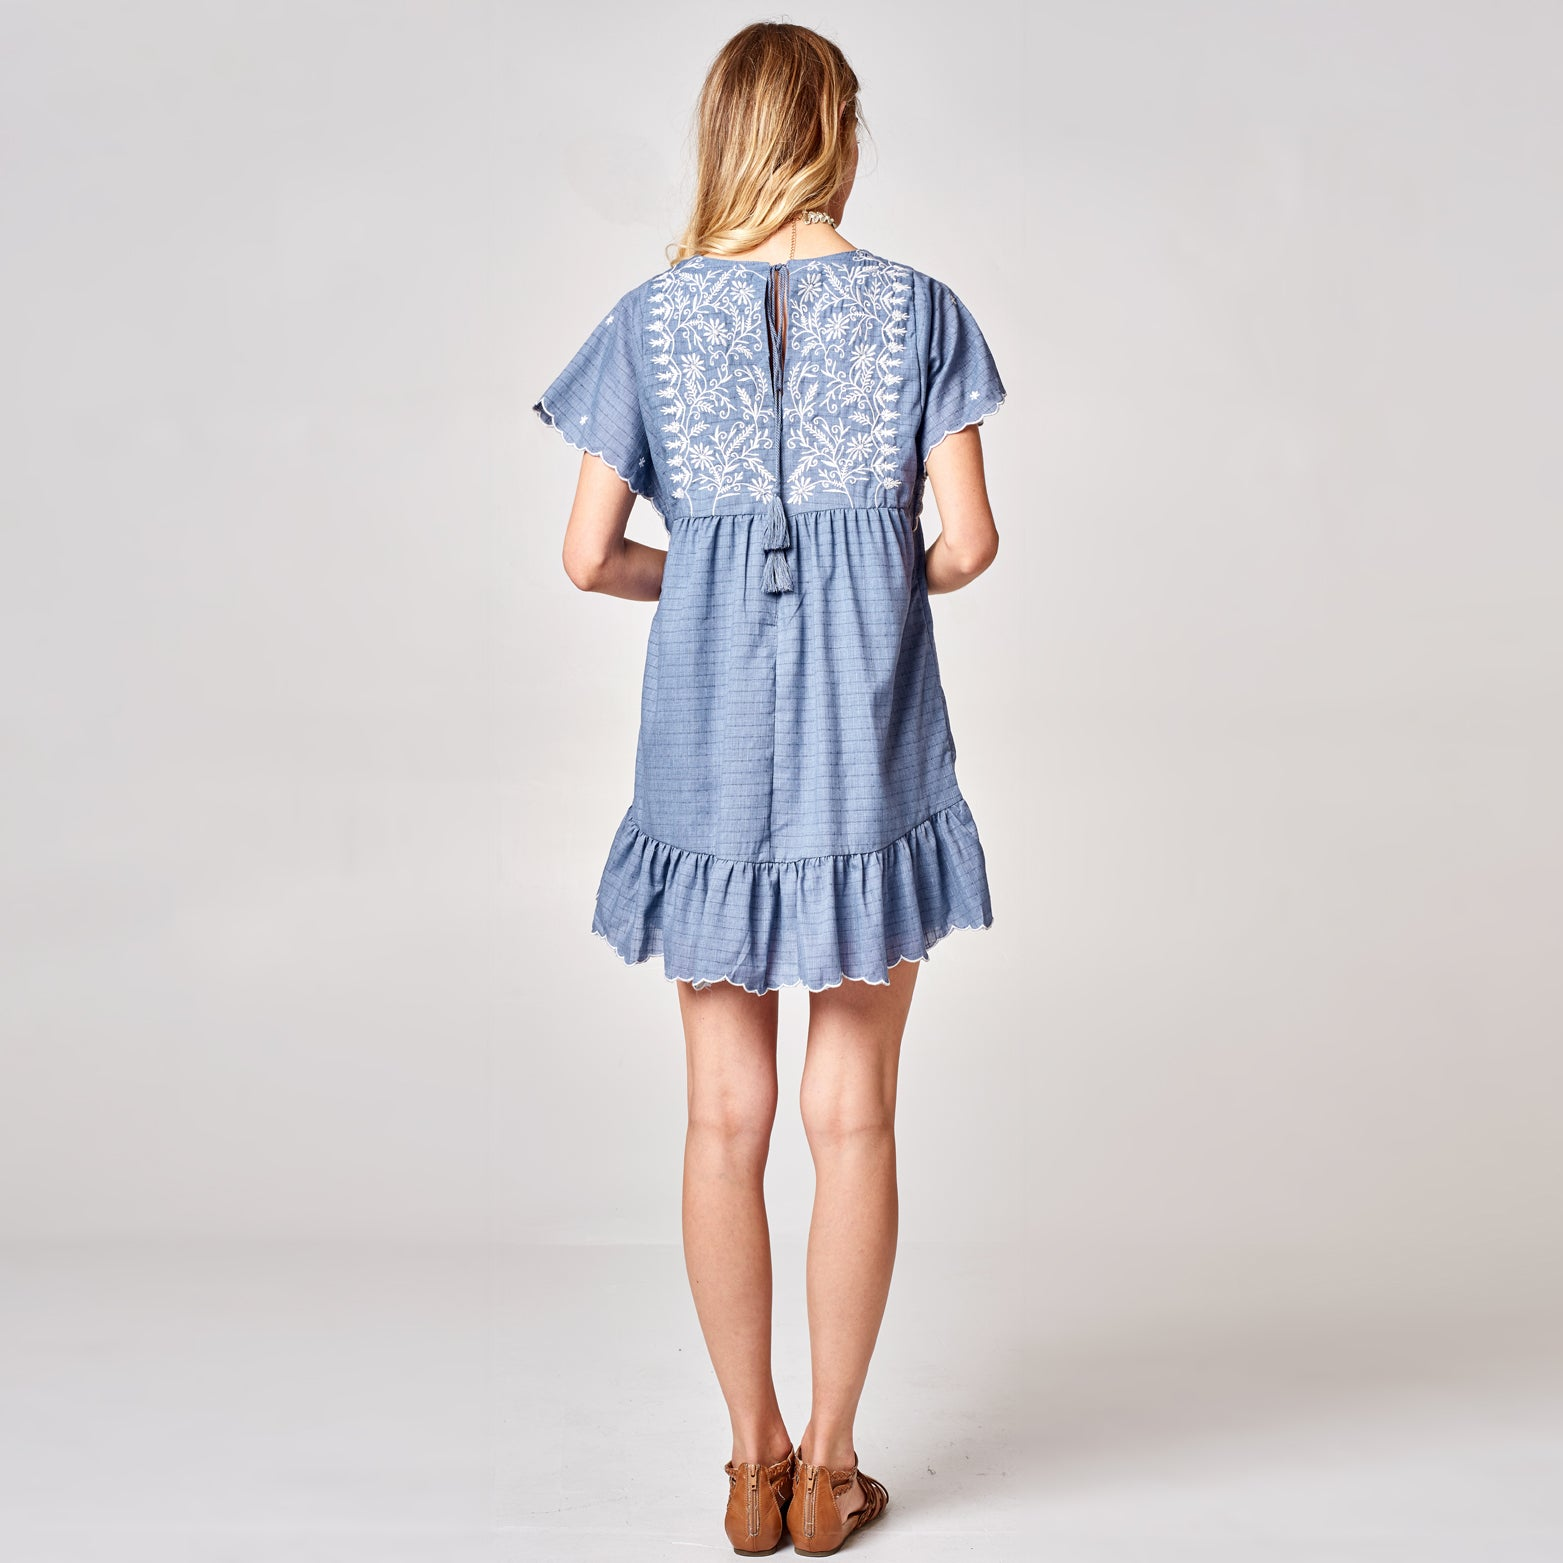 Embroidered Romper Dress - Love, Kuza